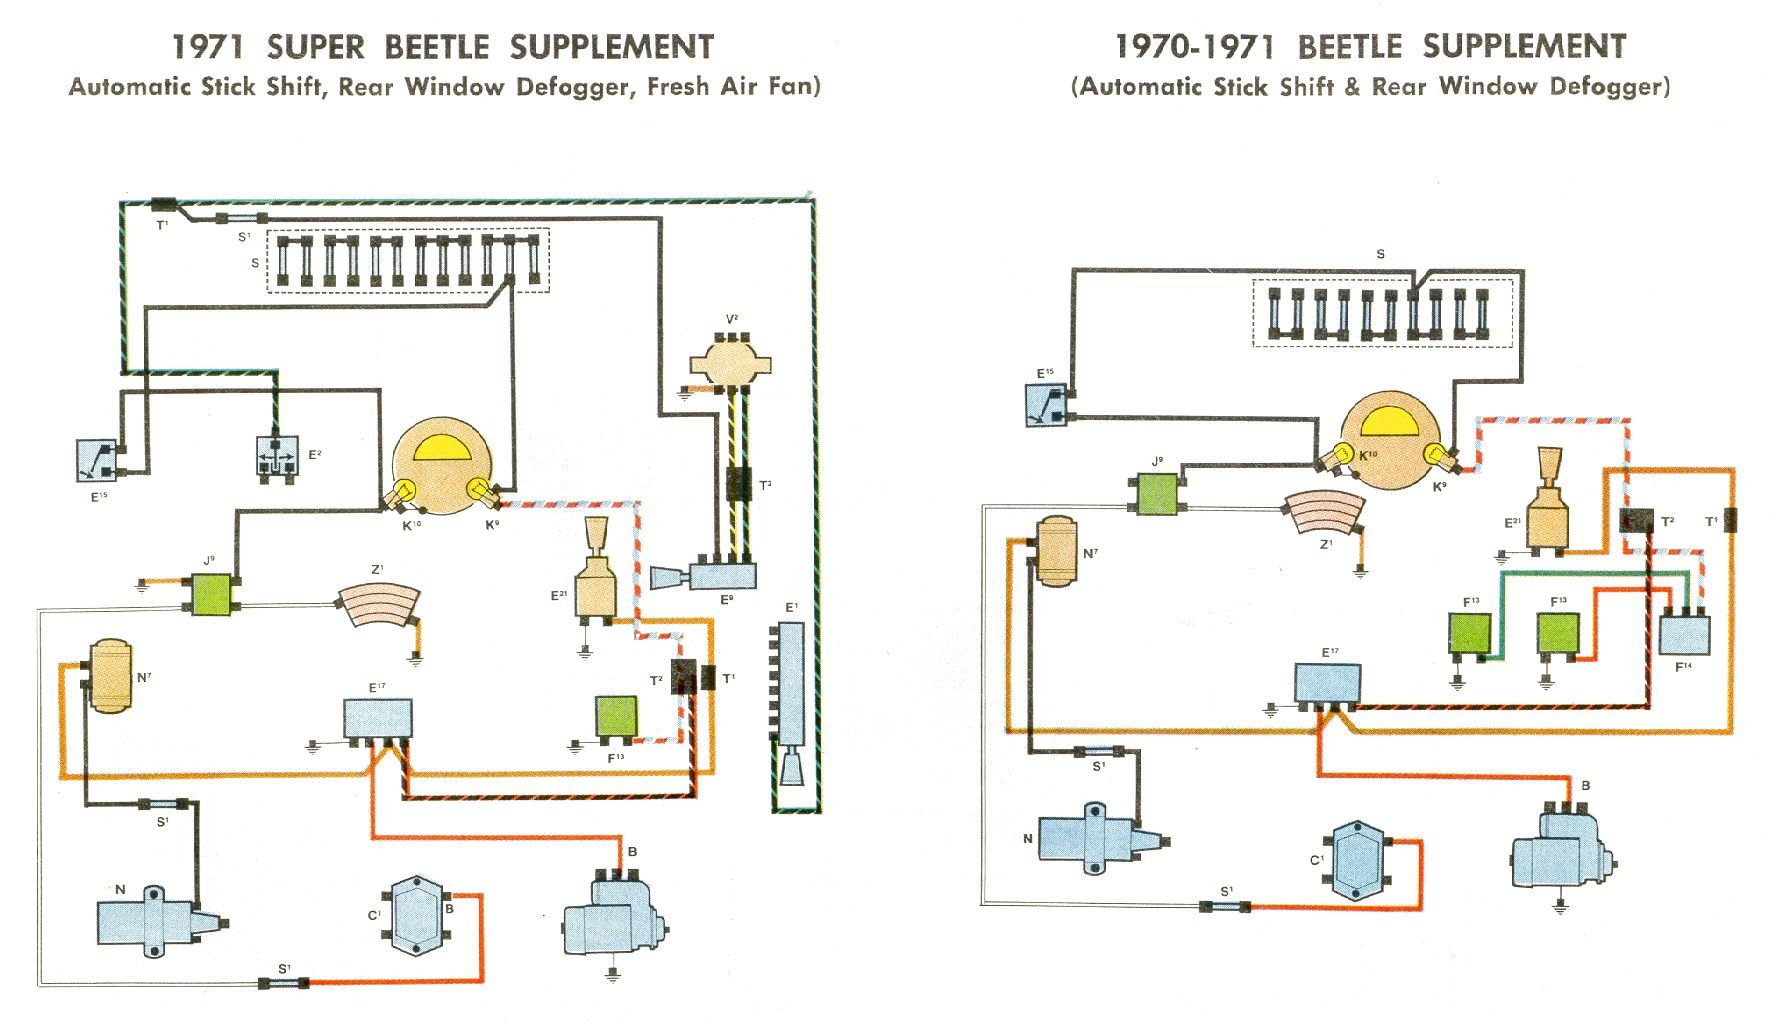 1970 bug wiring diagram 1969-71 beetle wiring diagram | thegoldenbug.com #8